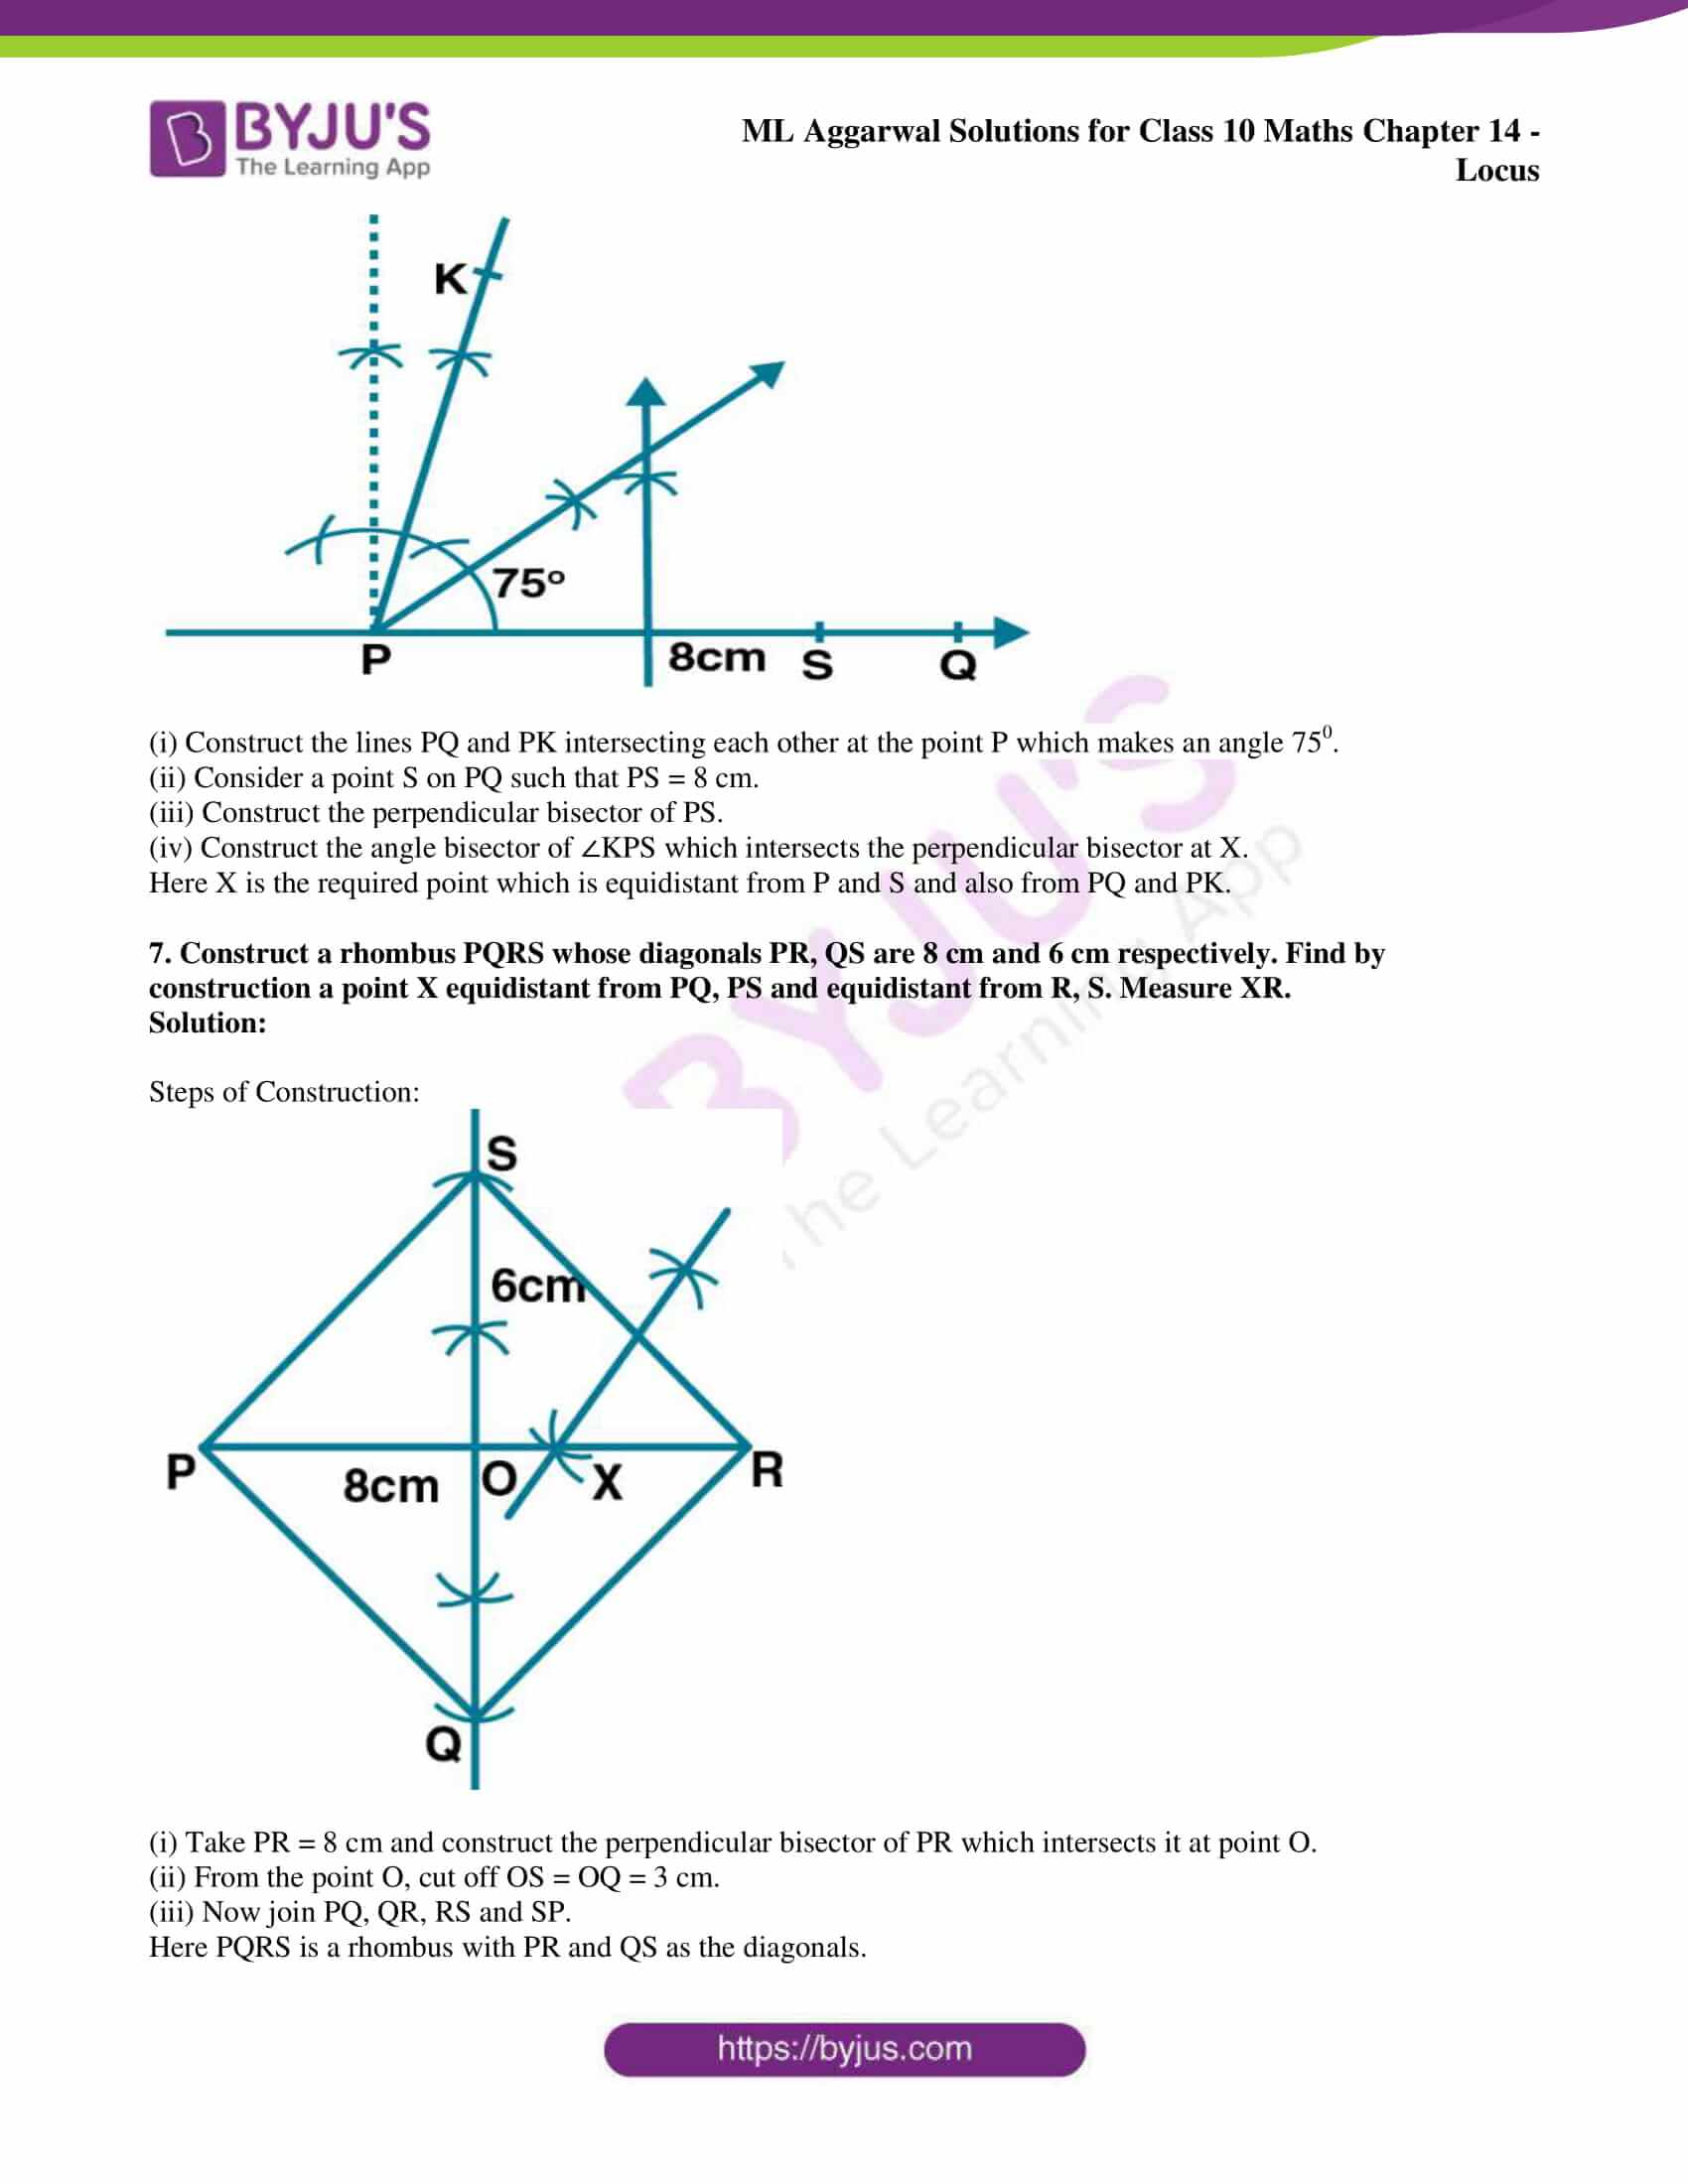 ml aggarwal solutions for class 10 maths chapter 14 22